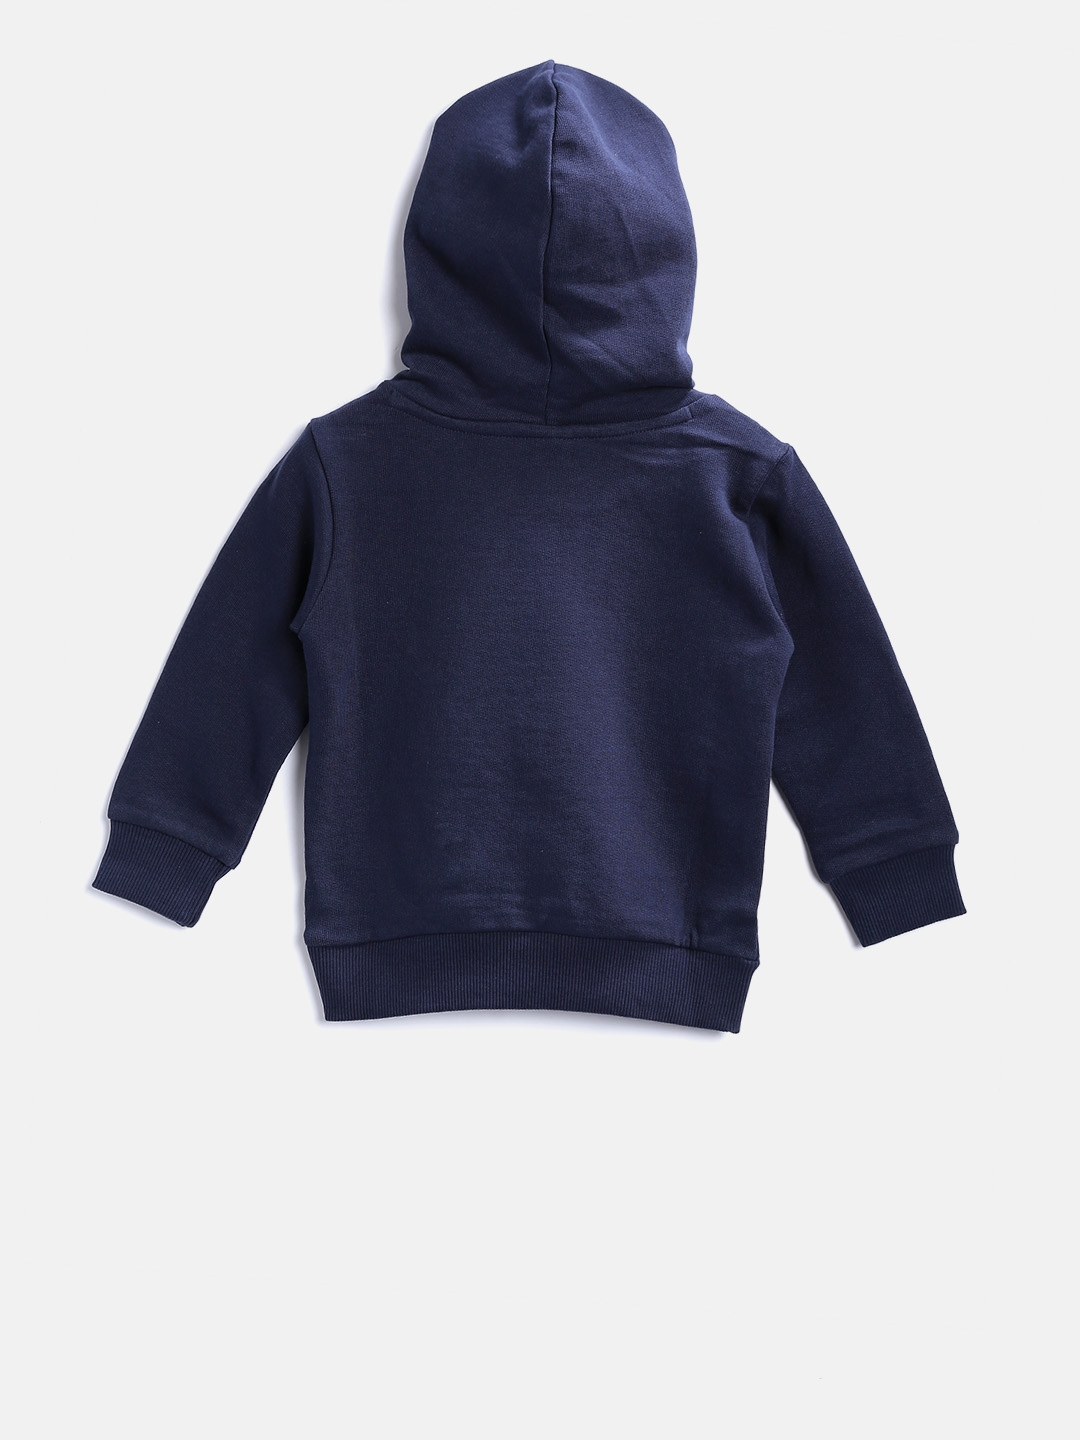 3867a0c923 United Colors of Benetton Boys Navy Blue Printed Hooded Sweatshirt